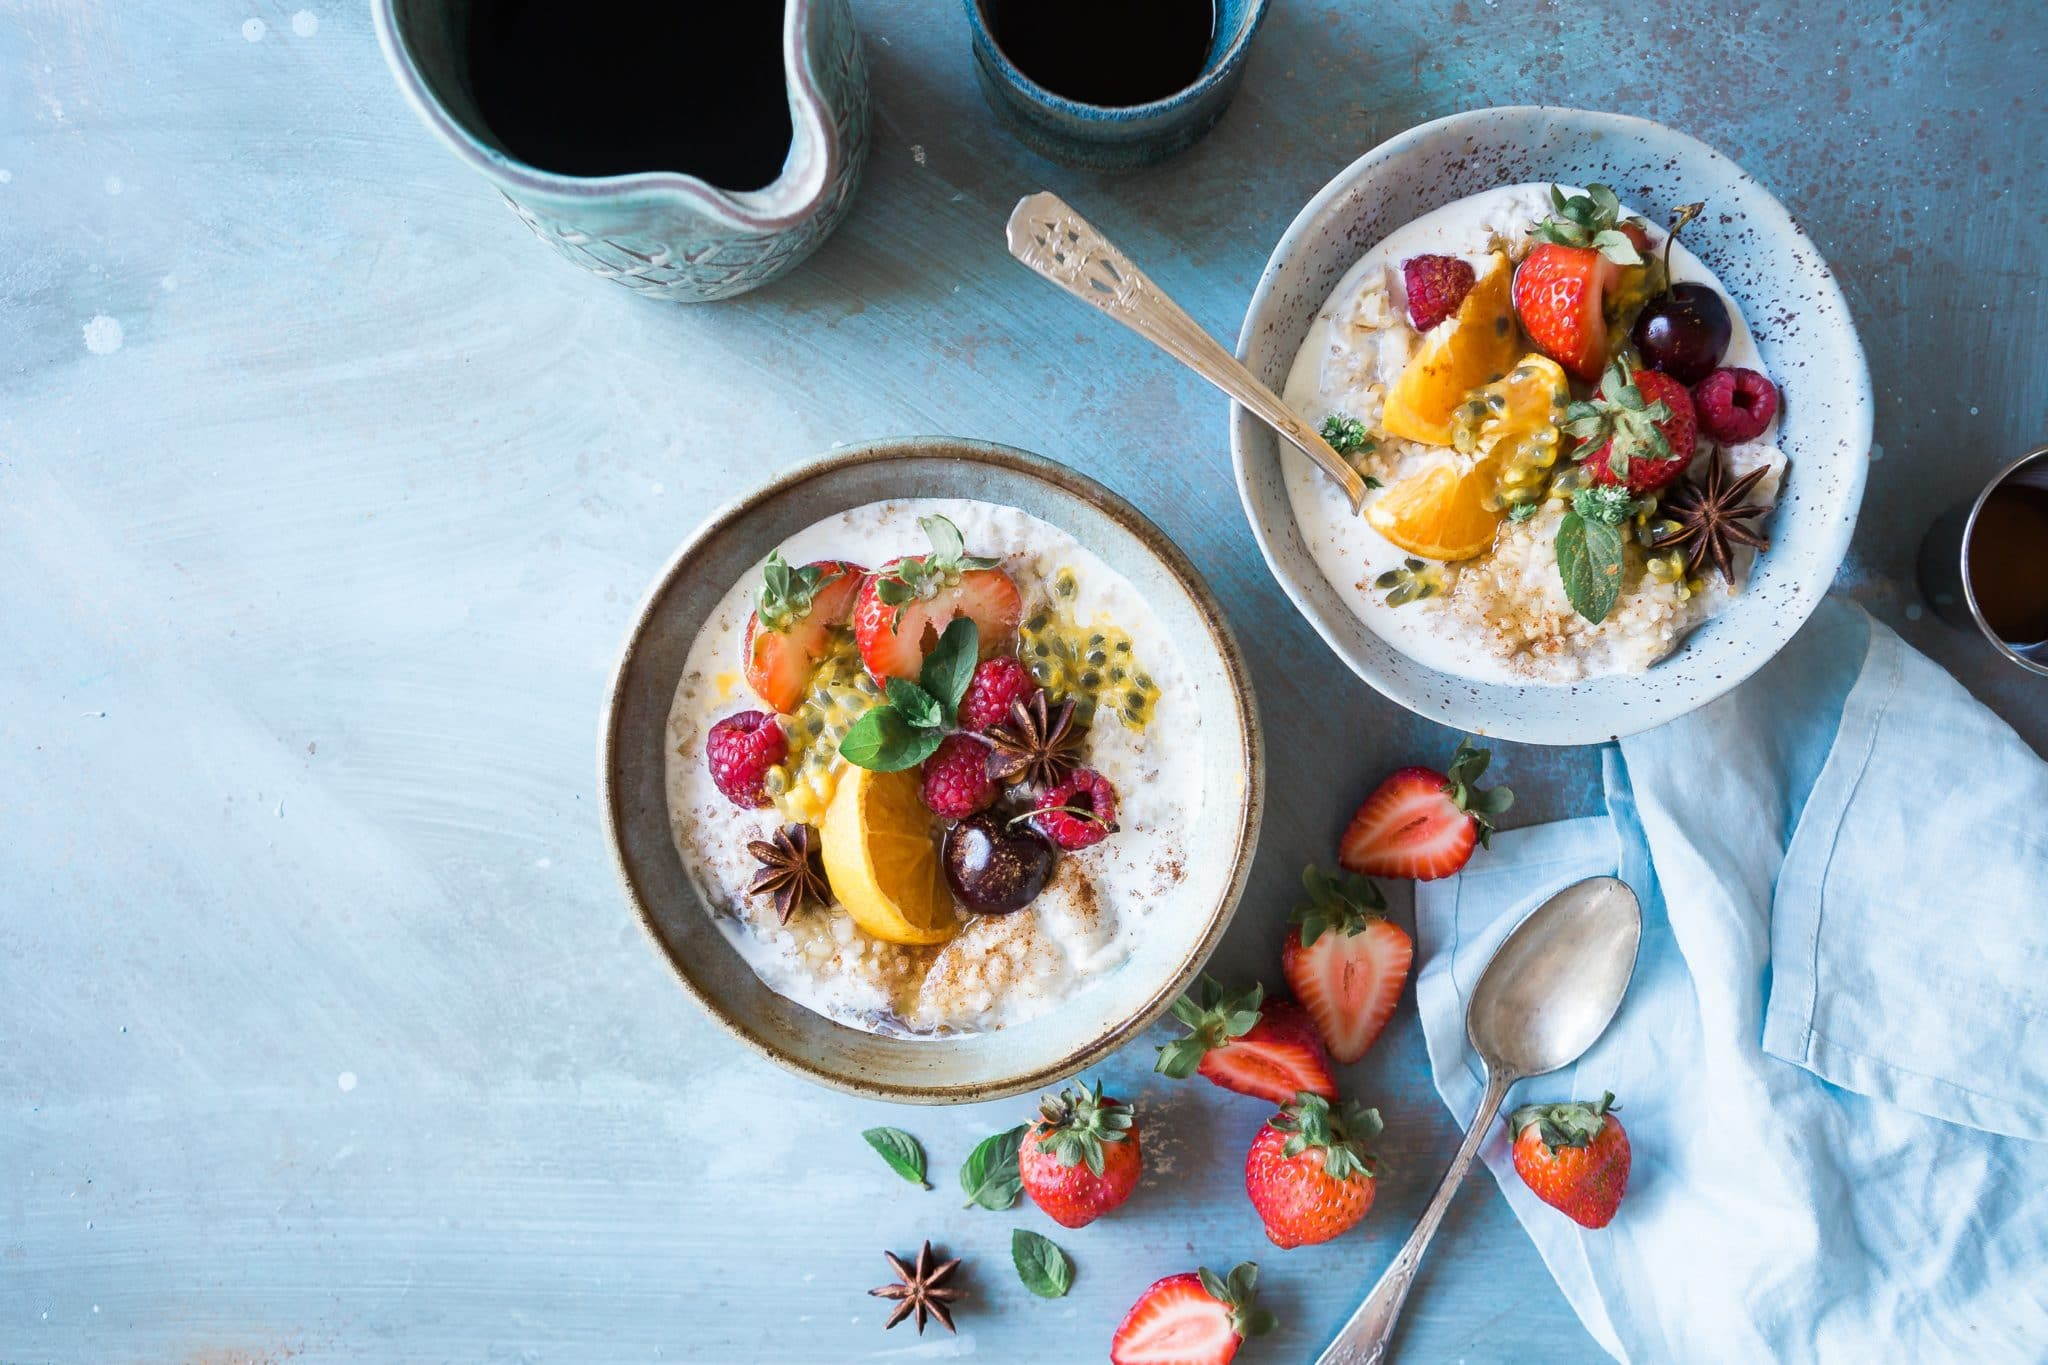 birds eye view of oatmeal bowl topped with fruit